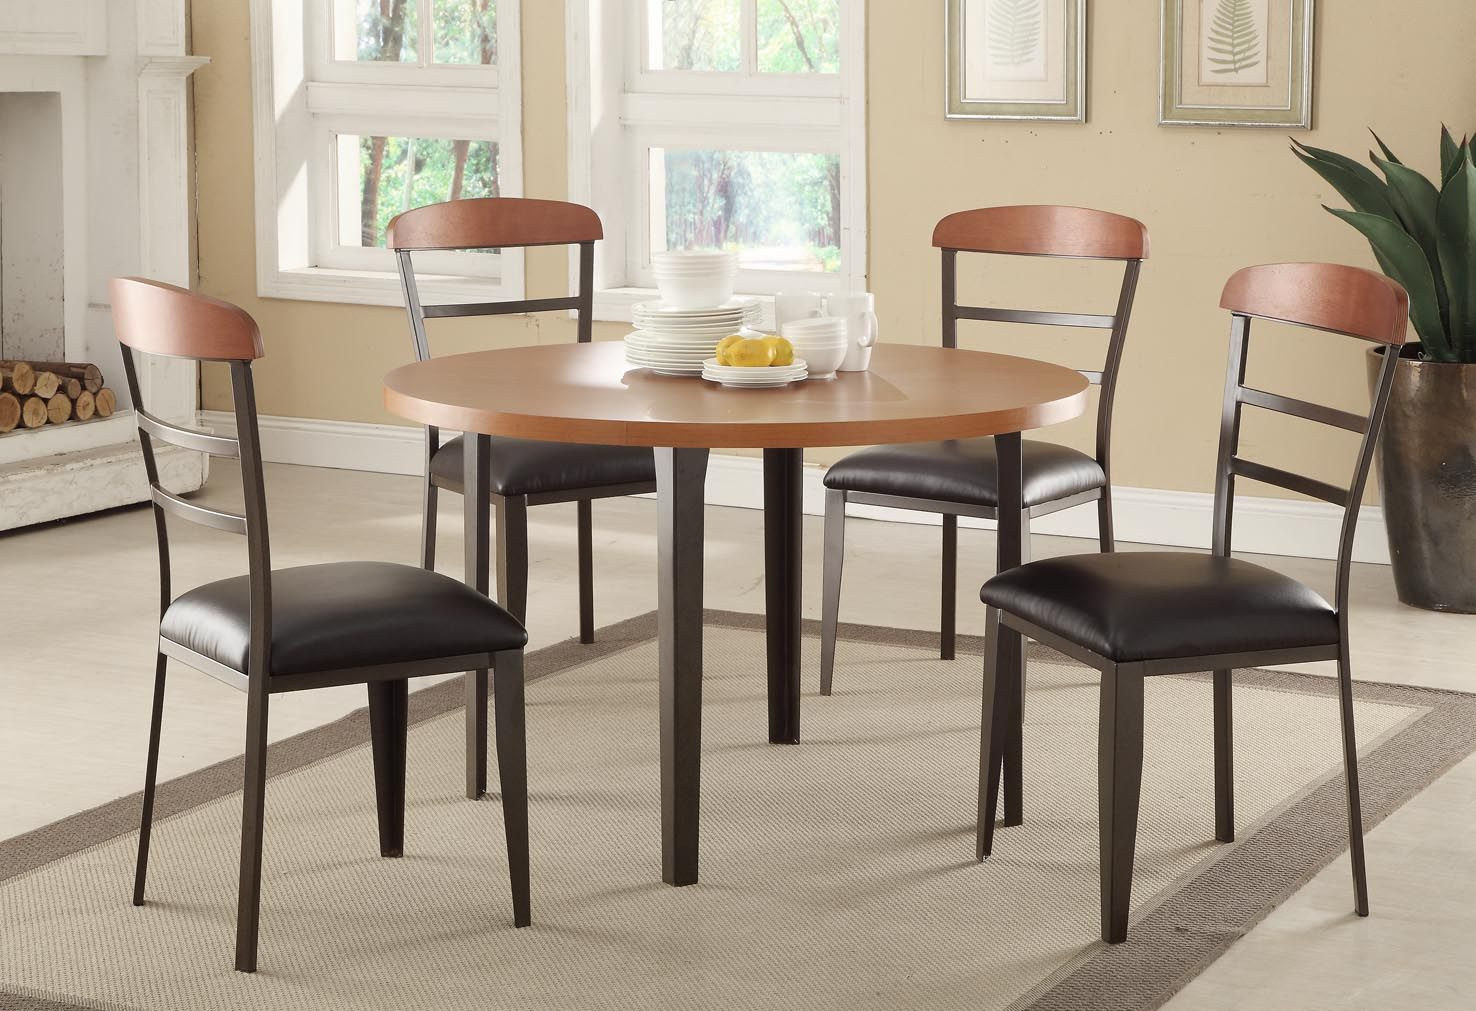 Kitchen Set Table And Chairs 17 Best Images About Kitchen Dinette Sets On Pinterest Table And